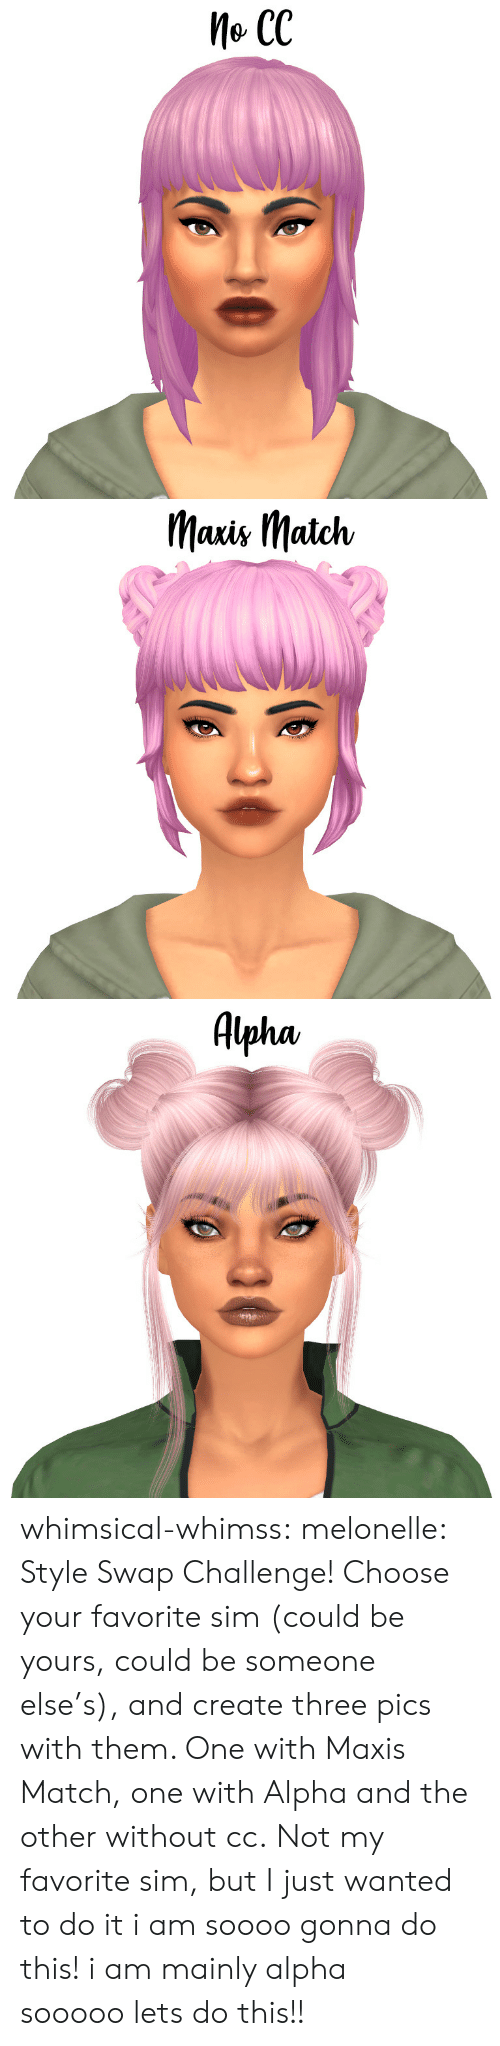 swap: Me CC   Mais IMatch   Alpha, whimsical-whimss:  melonelle: Style Swap Challenge! Choose your favorite sim (could be yours, could be someone else's), and create three pics with them. One with Maxis Match, one with Alpha and the other without cc.Not my favorite sim, but I just wanted to do it  i am soooogonna do this! i am mainly alpha sooooolets do this!!